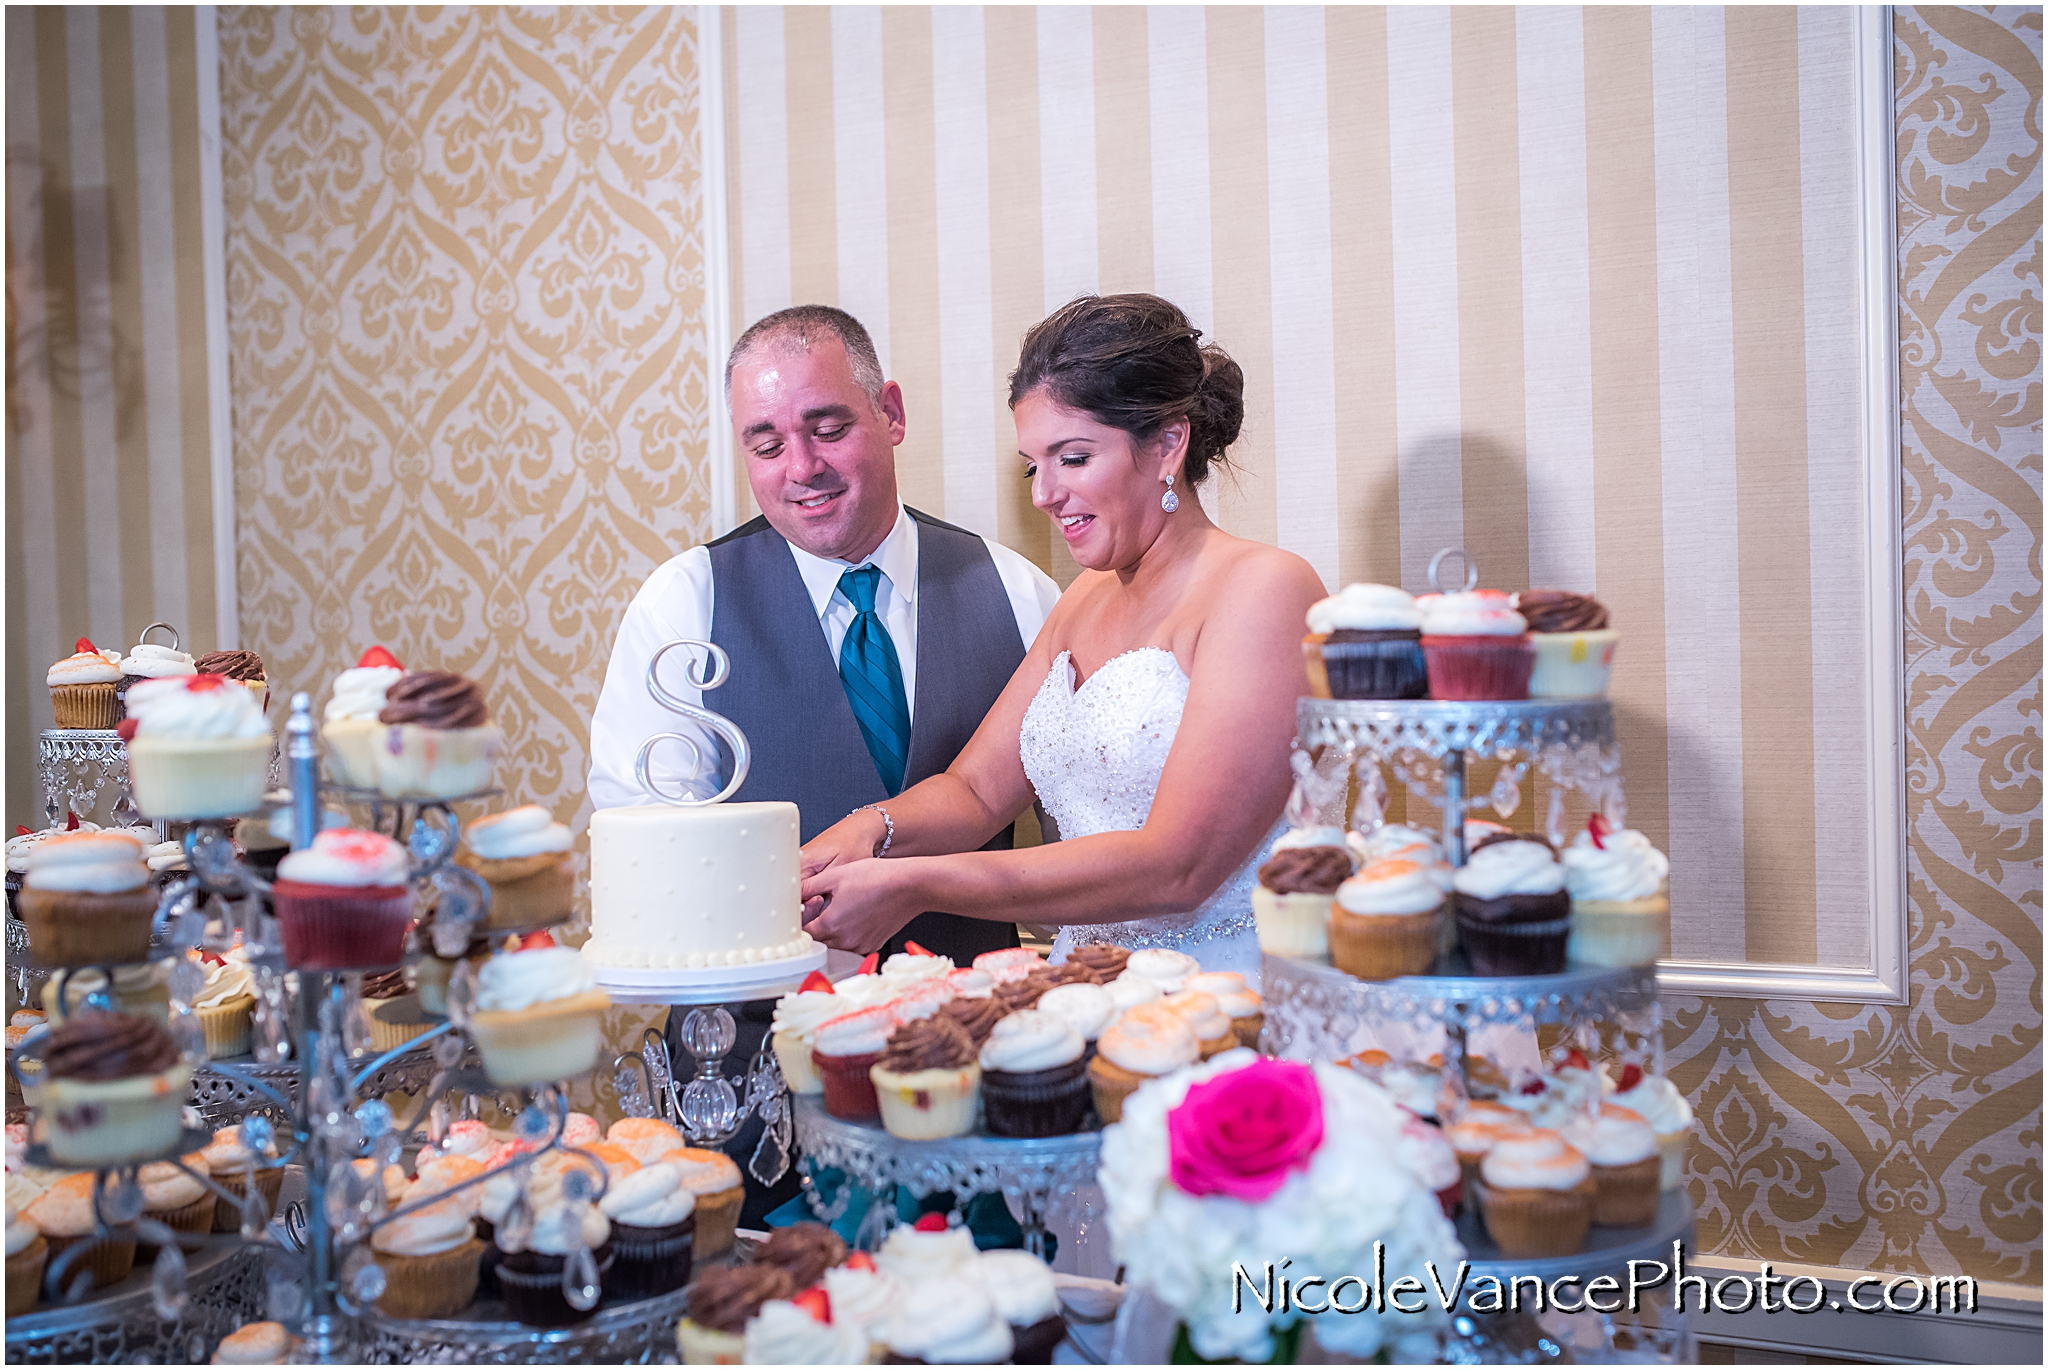 The bride and groom cut their wedding cake provided by Pearls at Virginia Crossings.